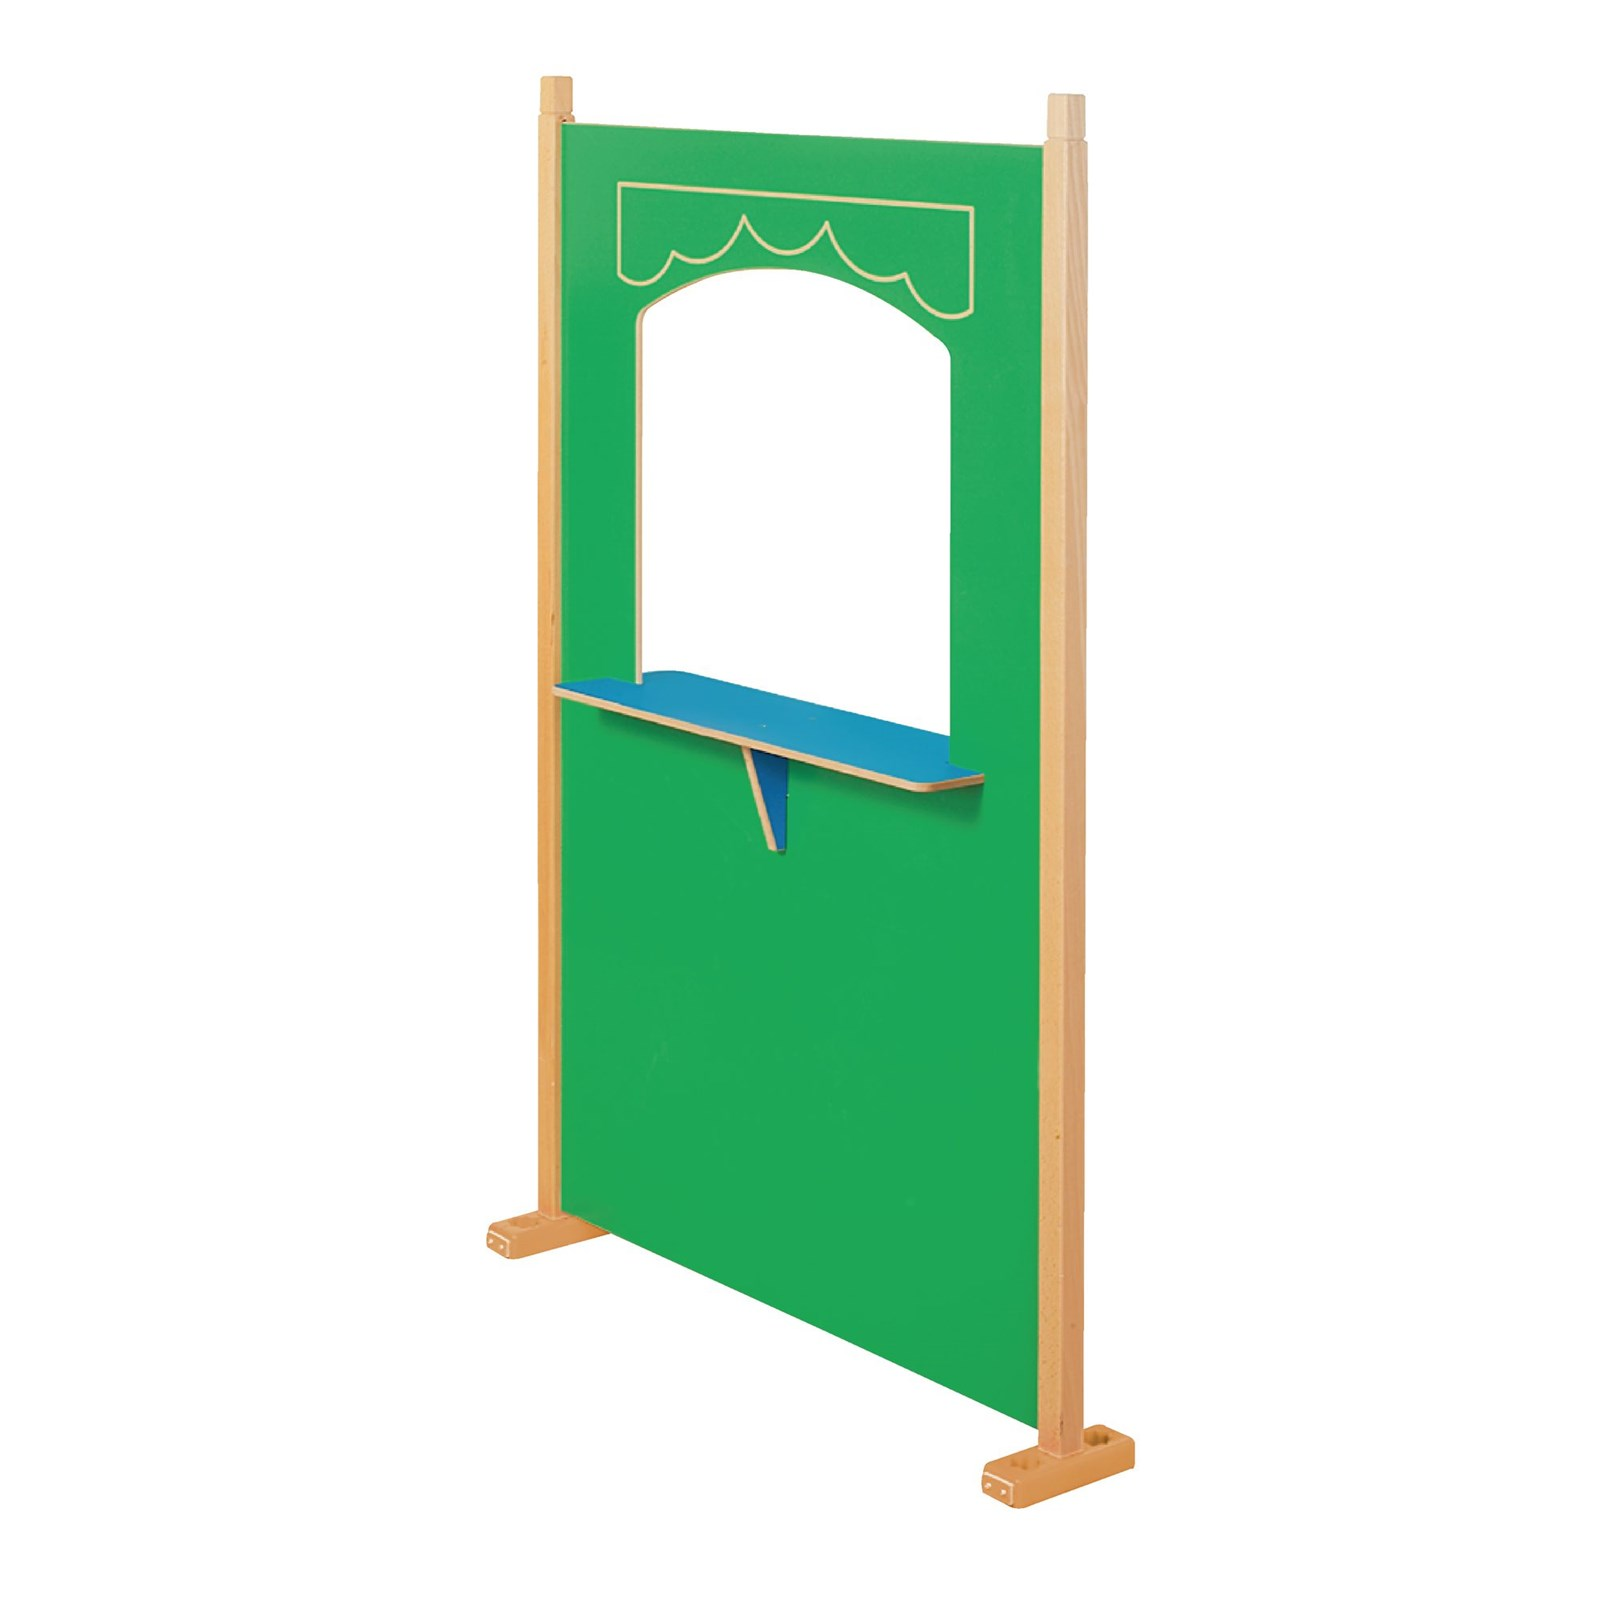 Millhouse - Role Play Panels - Counter